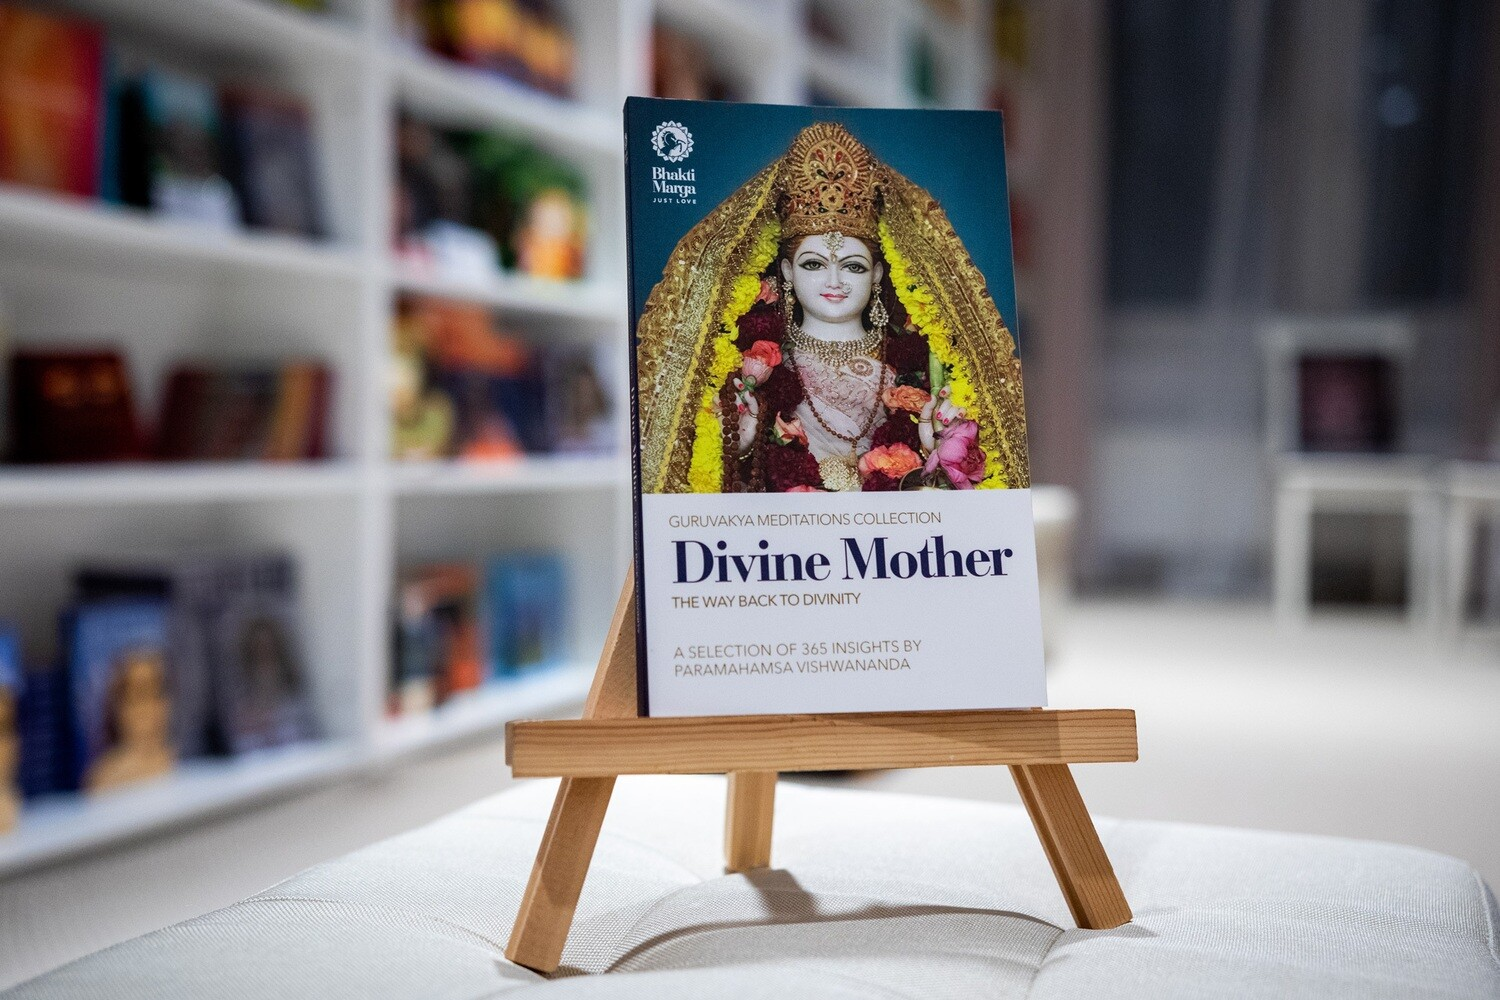 Divine Mother: The Way Back to Divinity